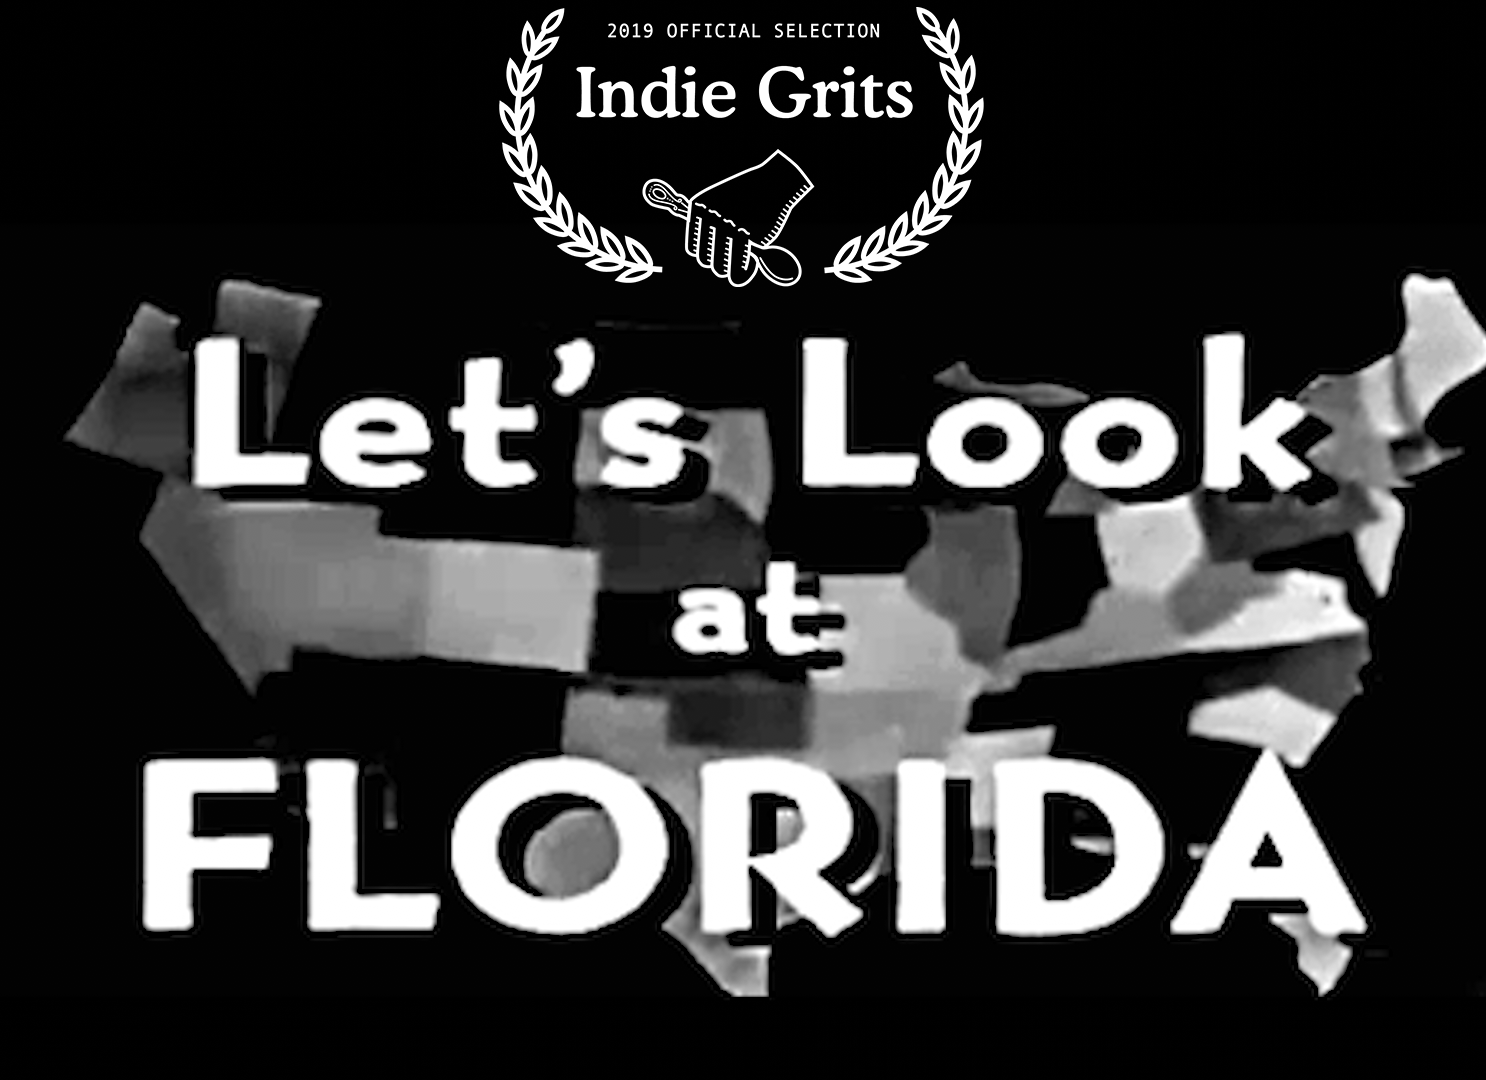 5/26/19 - Fracto Film Festival, BerlinThe story of the attempted draining and development Florida can be told through a series of failures dating back to Andrew Hamilton. The land in the Everglades, specifically, has been unsuccessfully drained, flooded, and irrigated dozens of times since the 1700's.